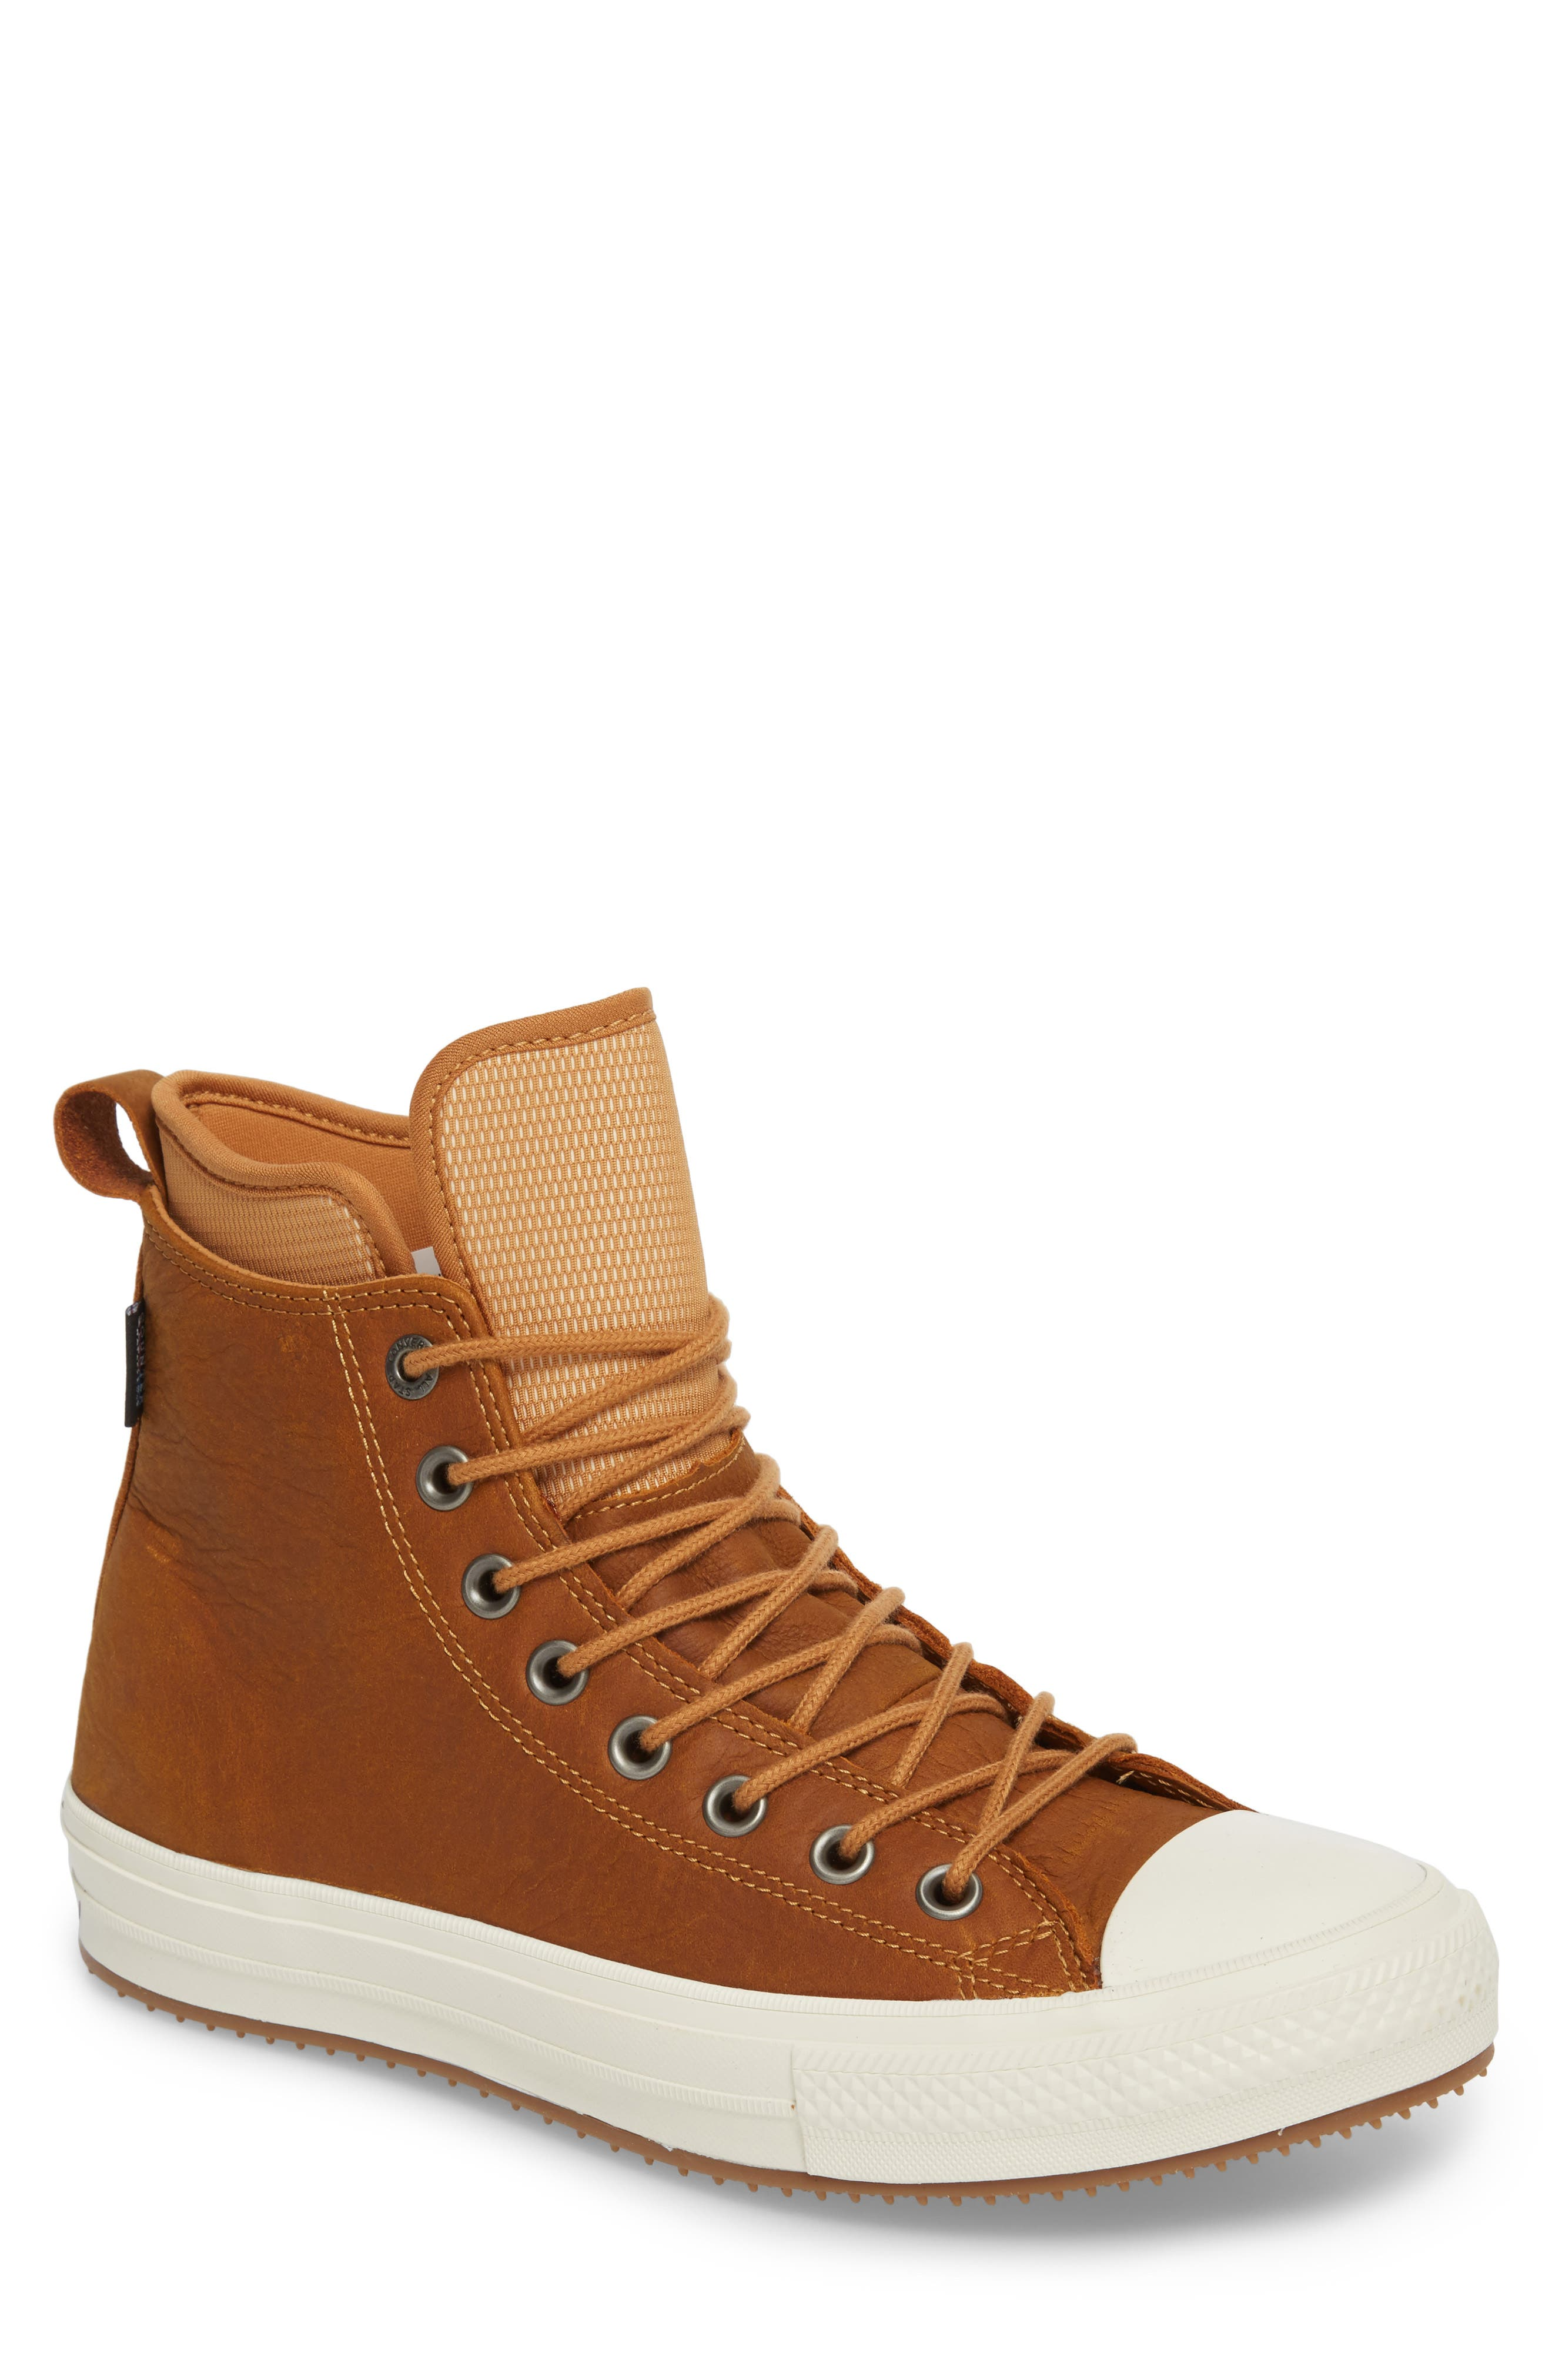 Chuck Taylor<sup>®</sup> All Star<sup>®</sup> Waterproof Sneaker,                         Main,                         color, Raw Sugar